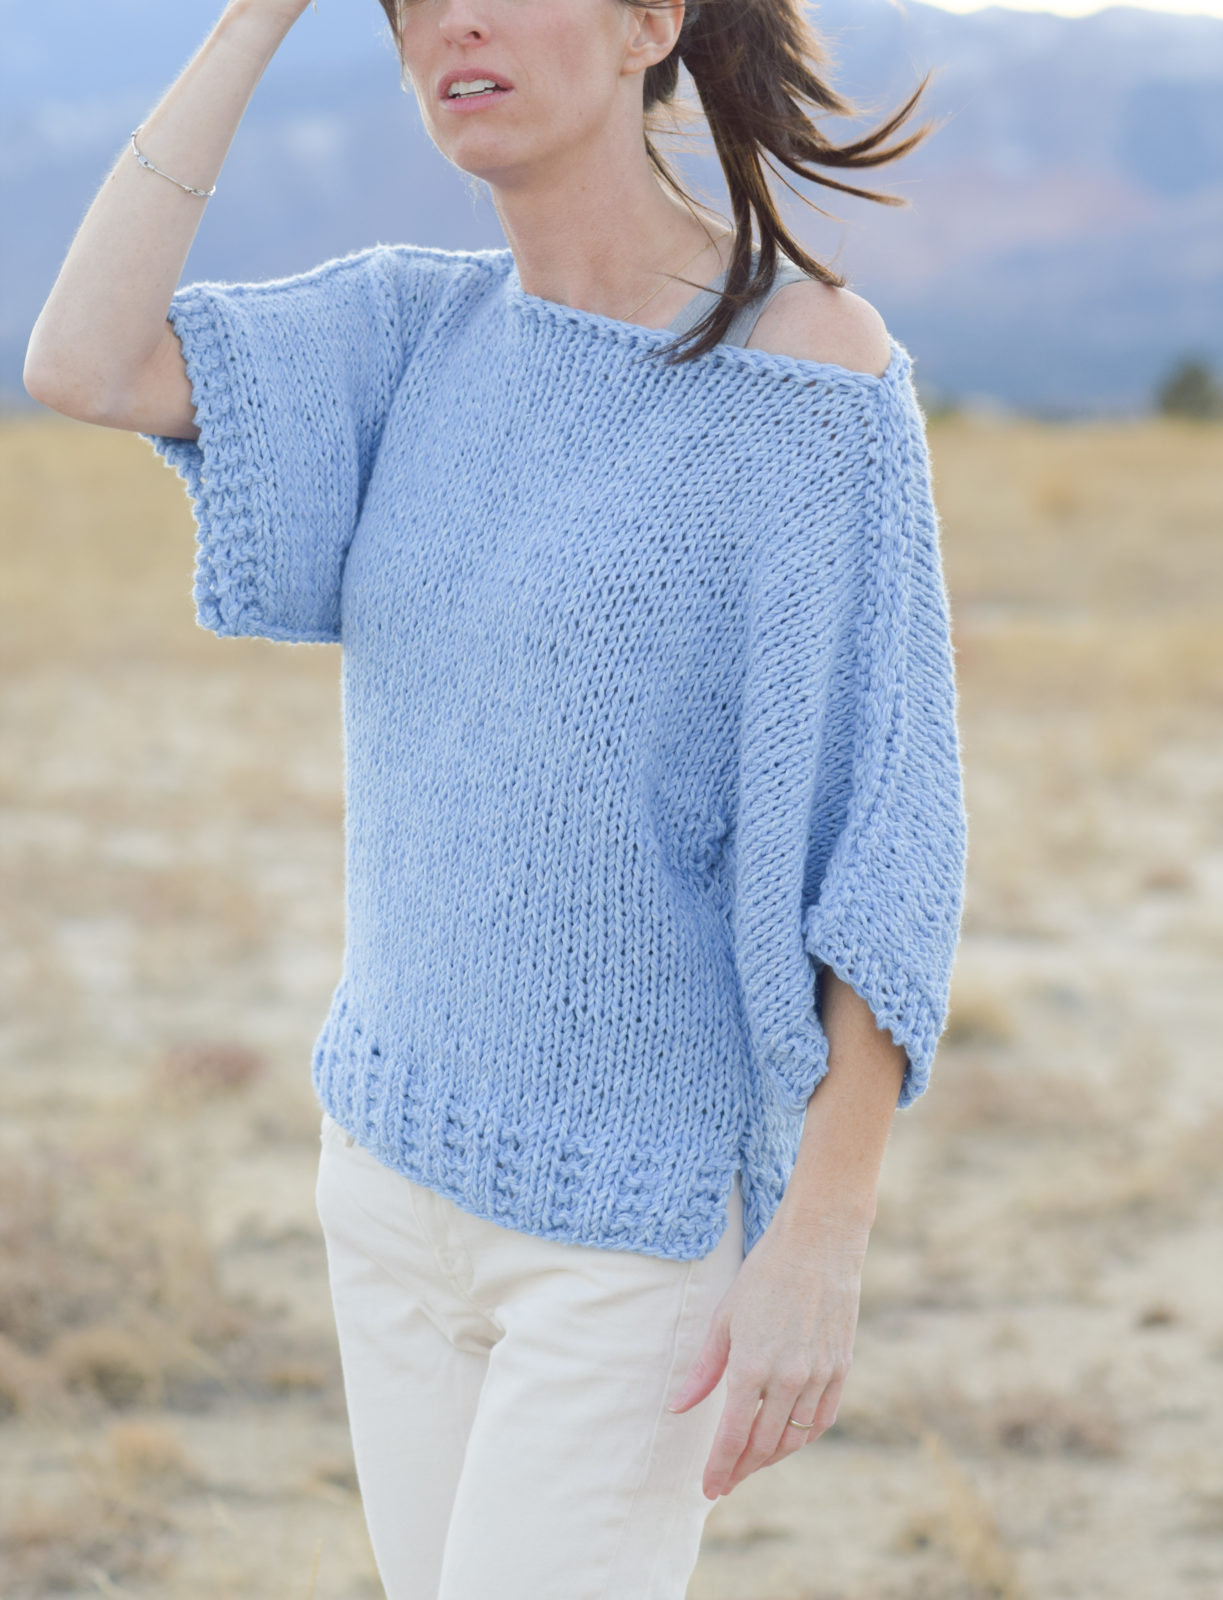 Easy Sweater Knitting Pattern For Beginners : Easy knit boxy t shirt quot jeans pattern mama in a stitch